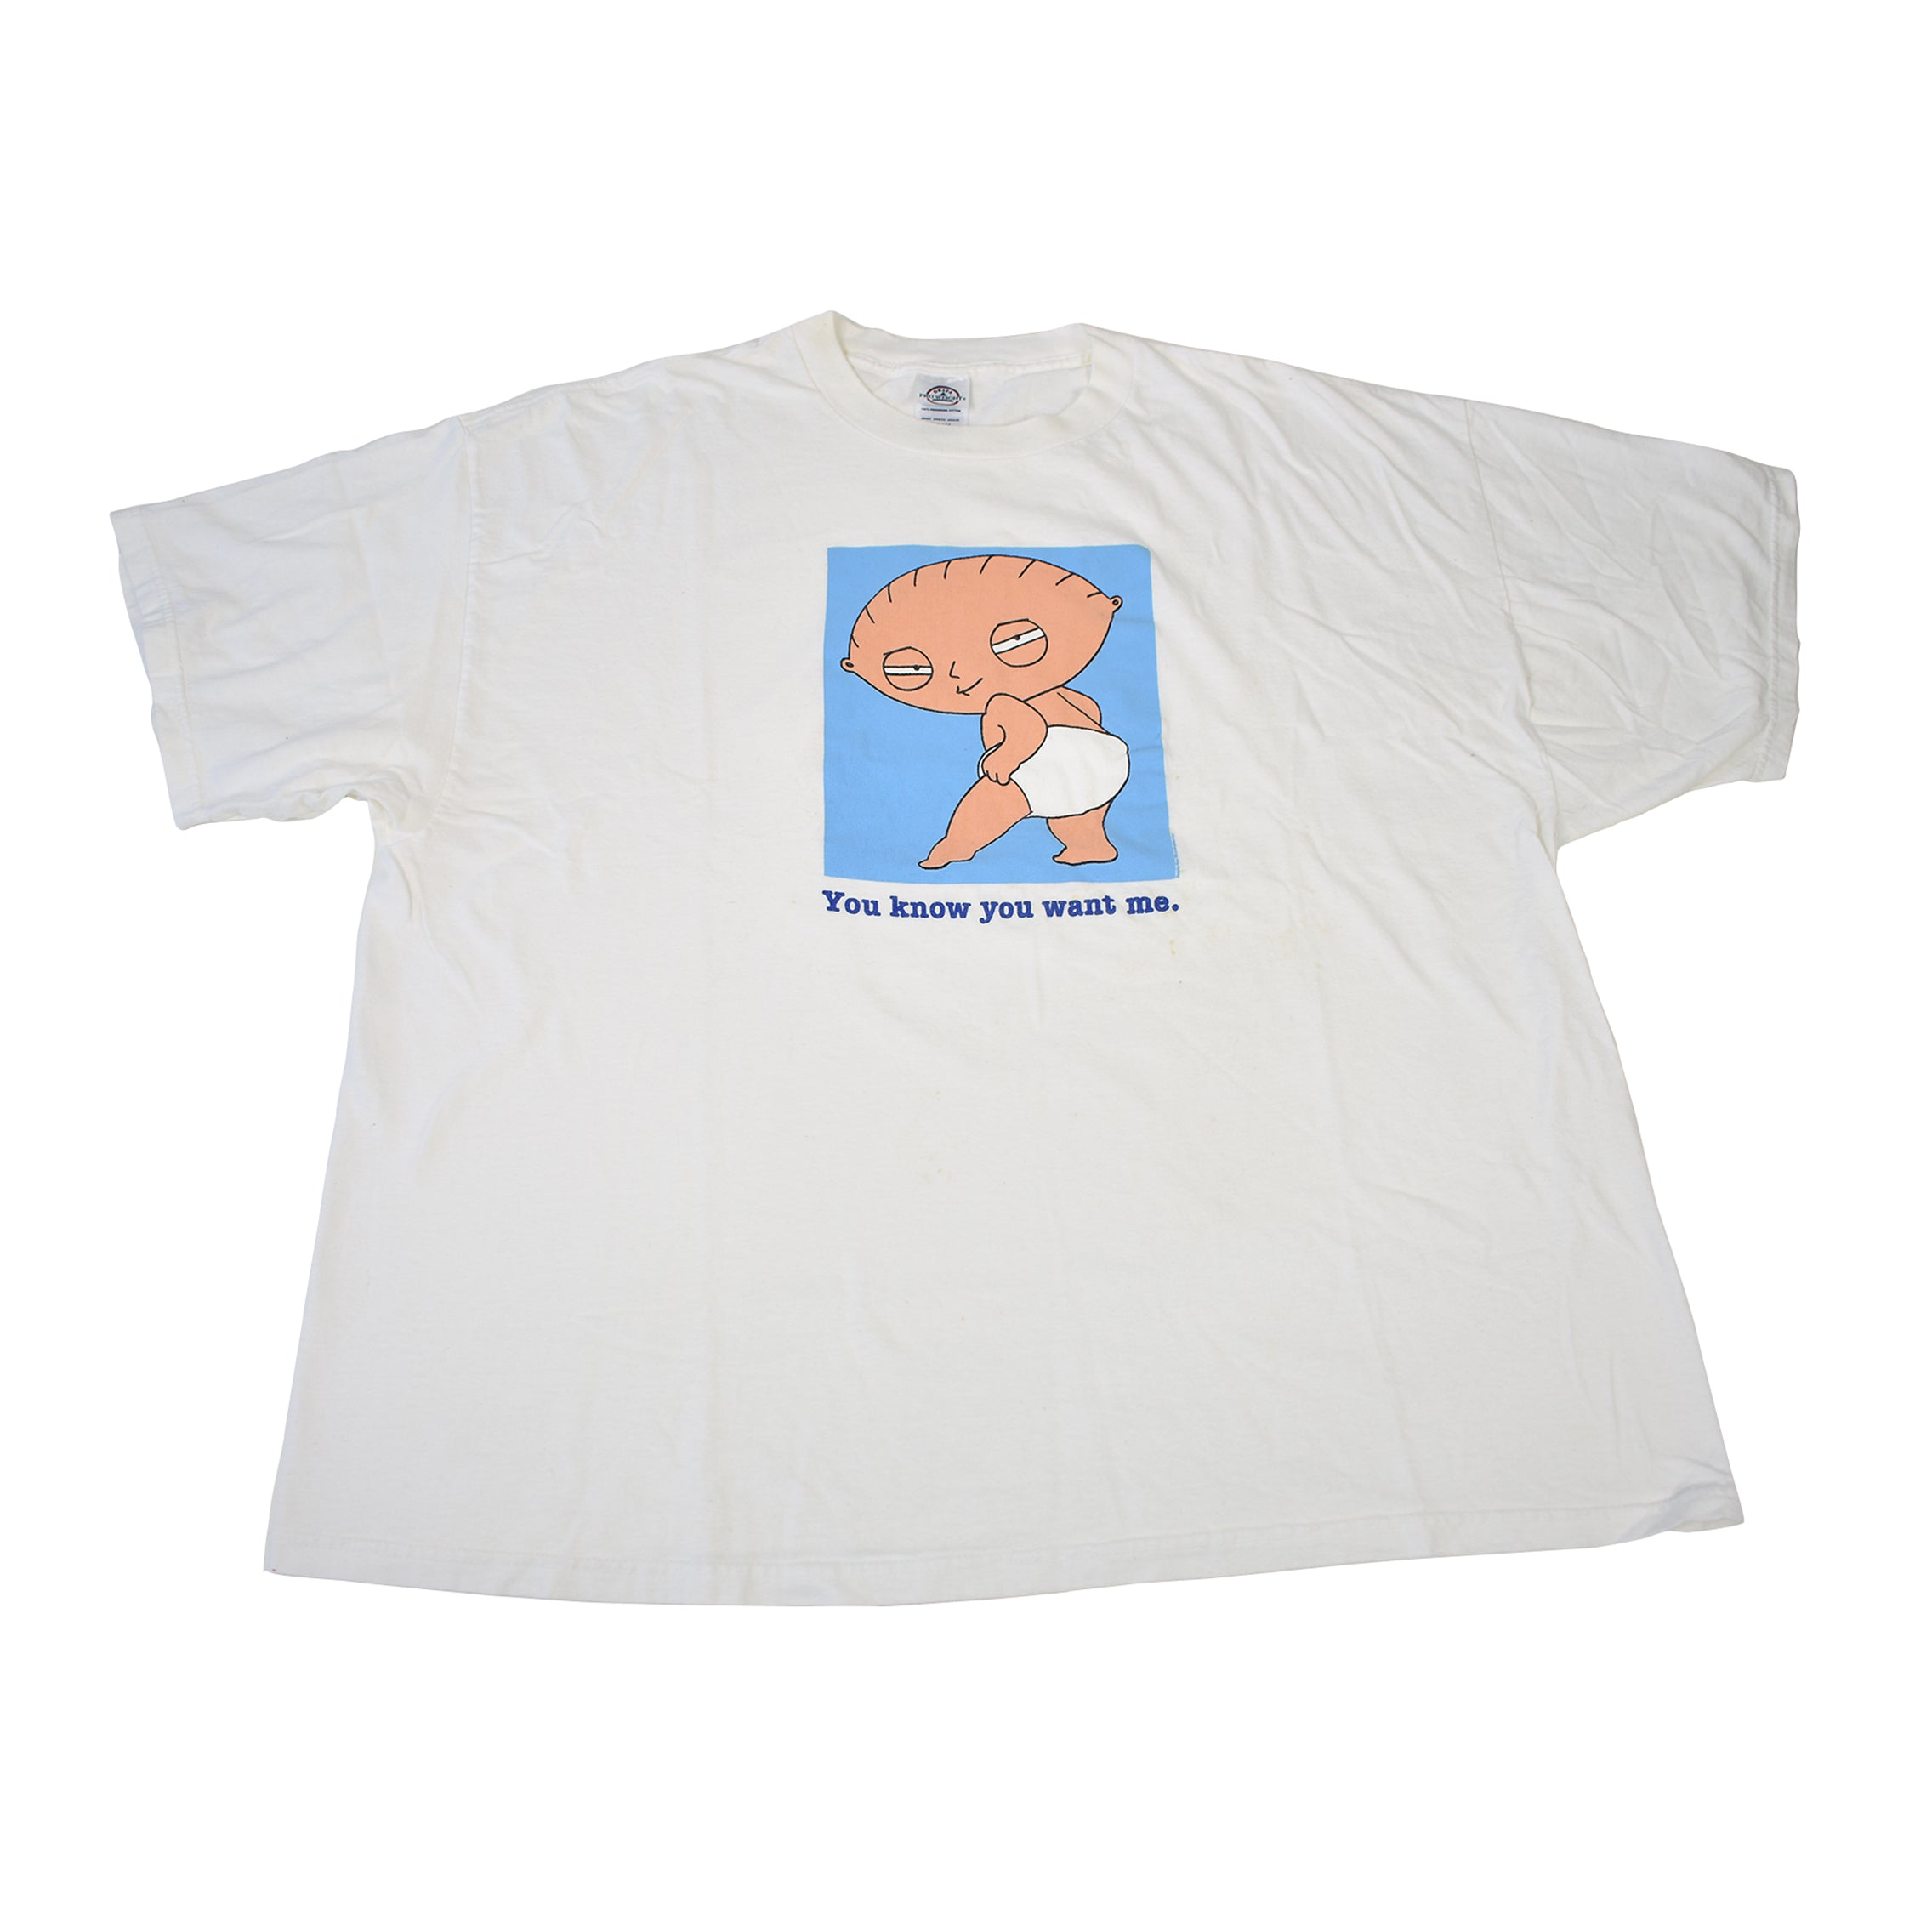 2003 Stewie Family Guy I Know You Want Me T-Shirt